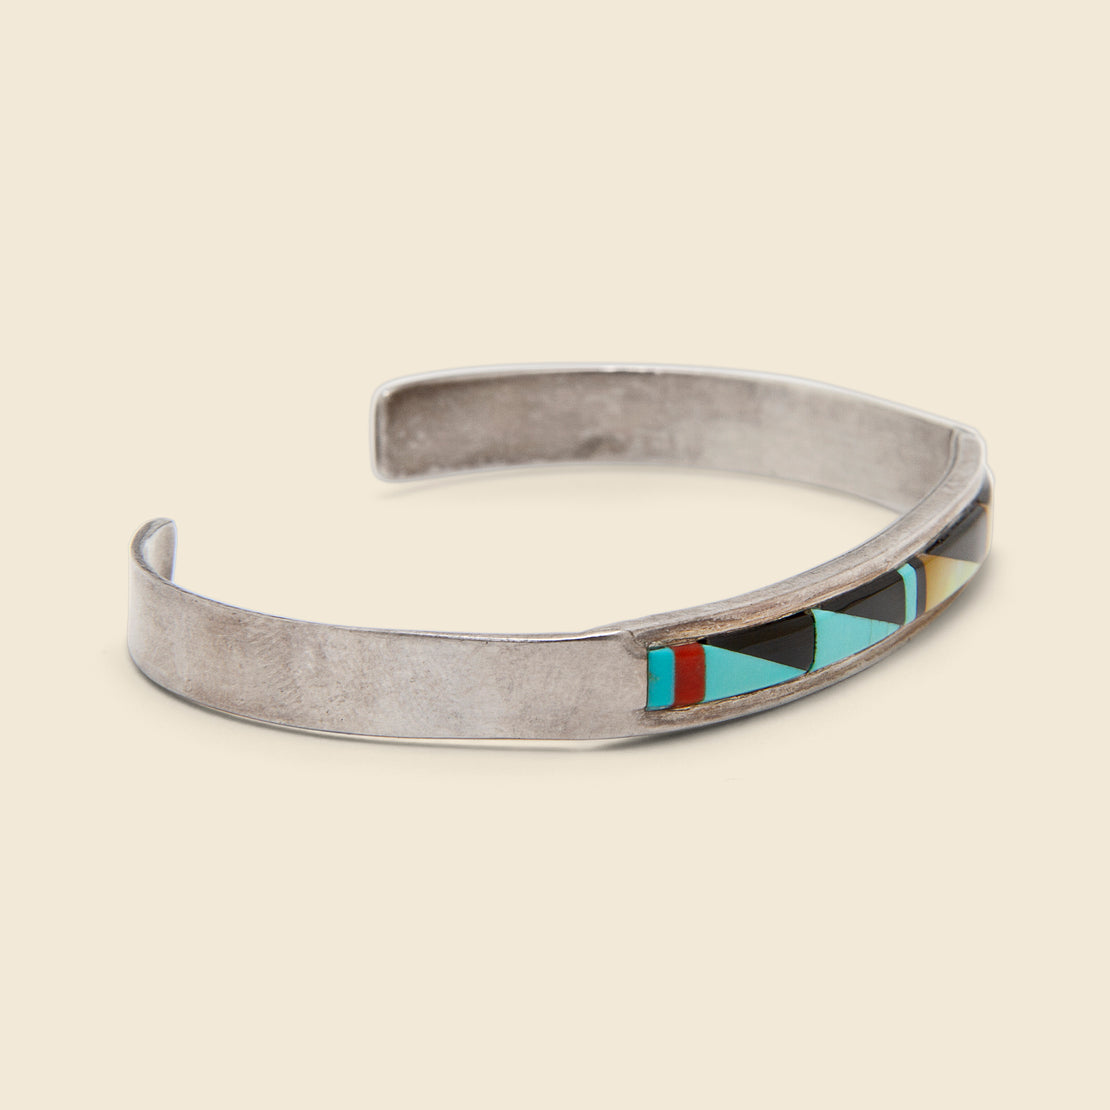 Zuni Inlay Cuff - Sterling/Turquoise/Onyx/Mother of Pearl